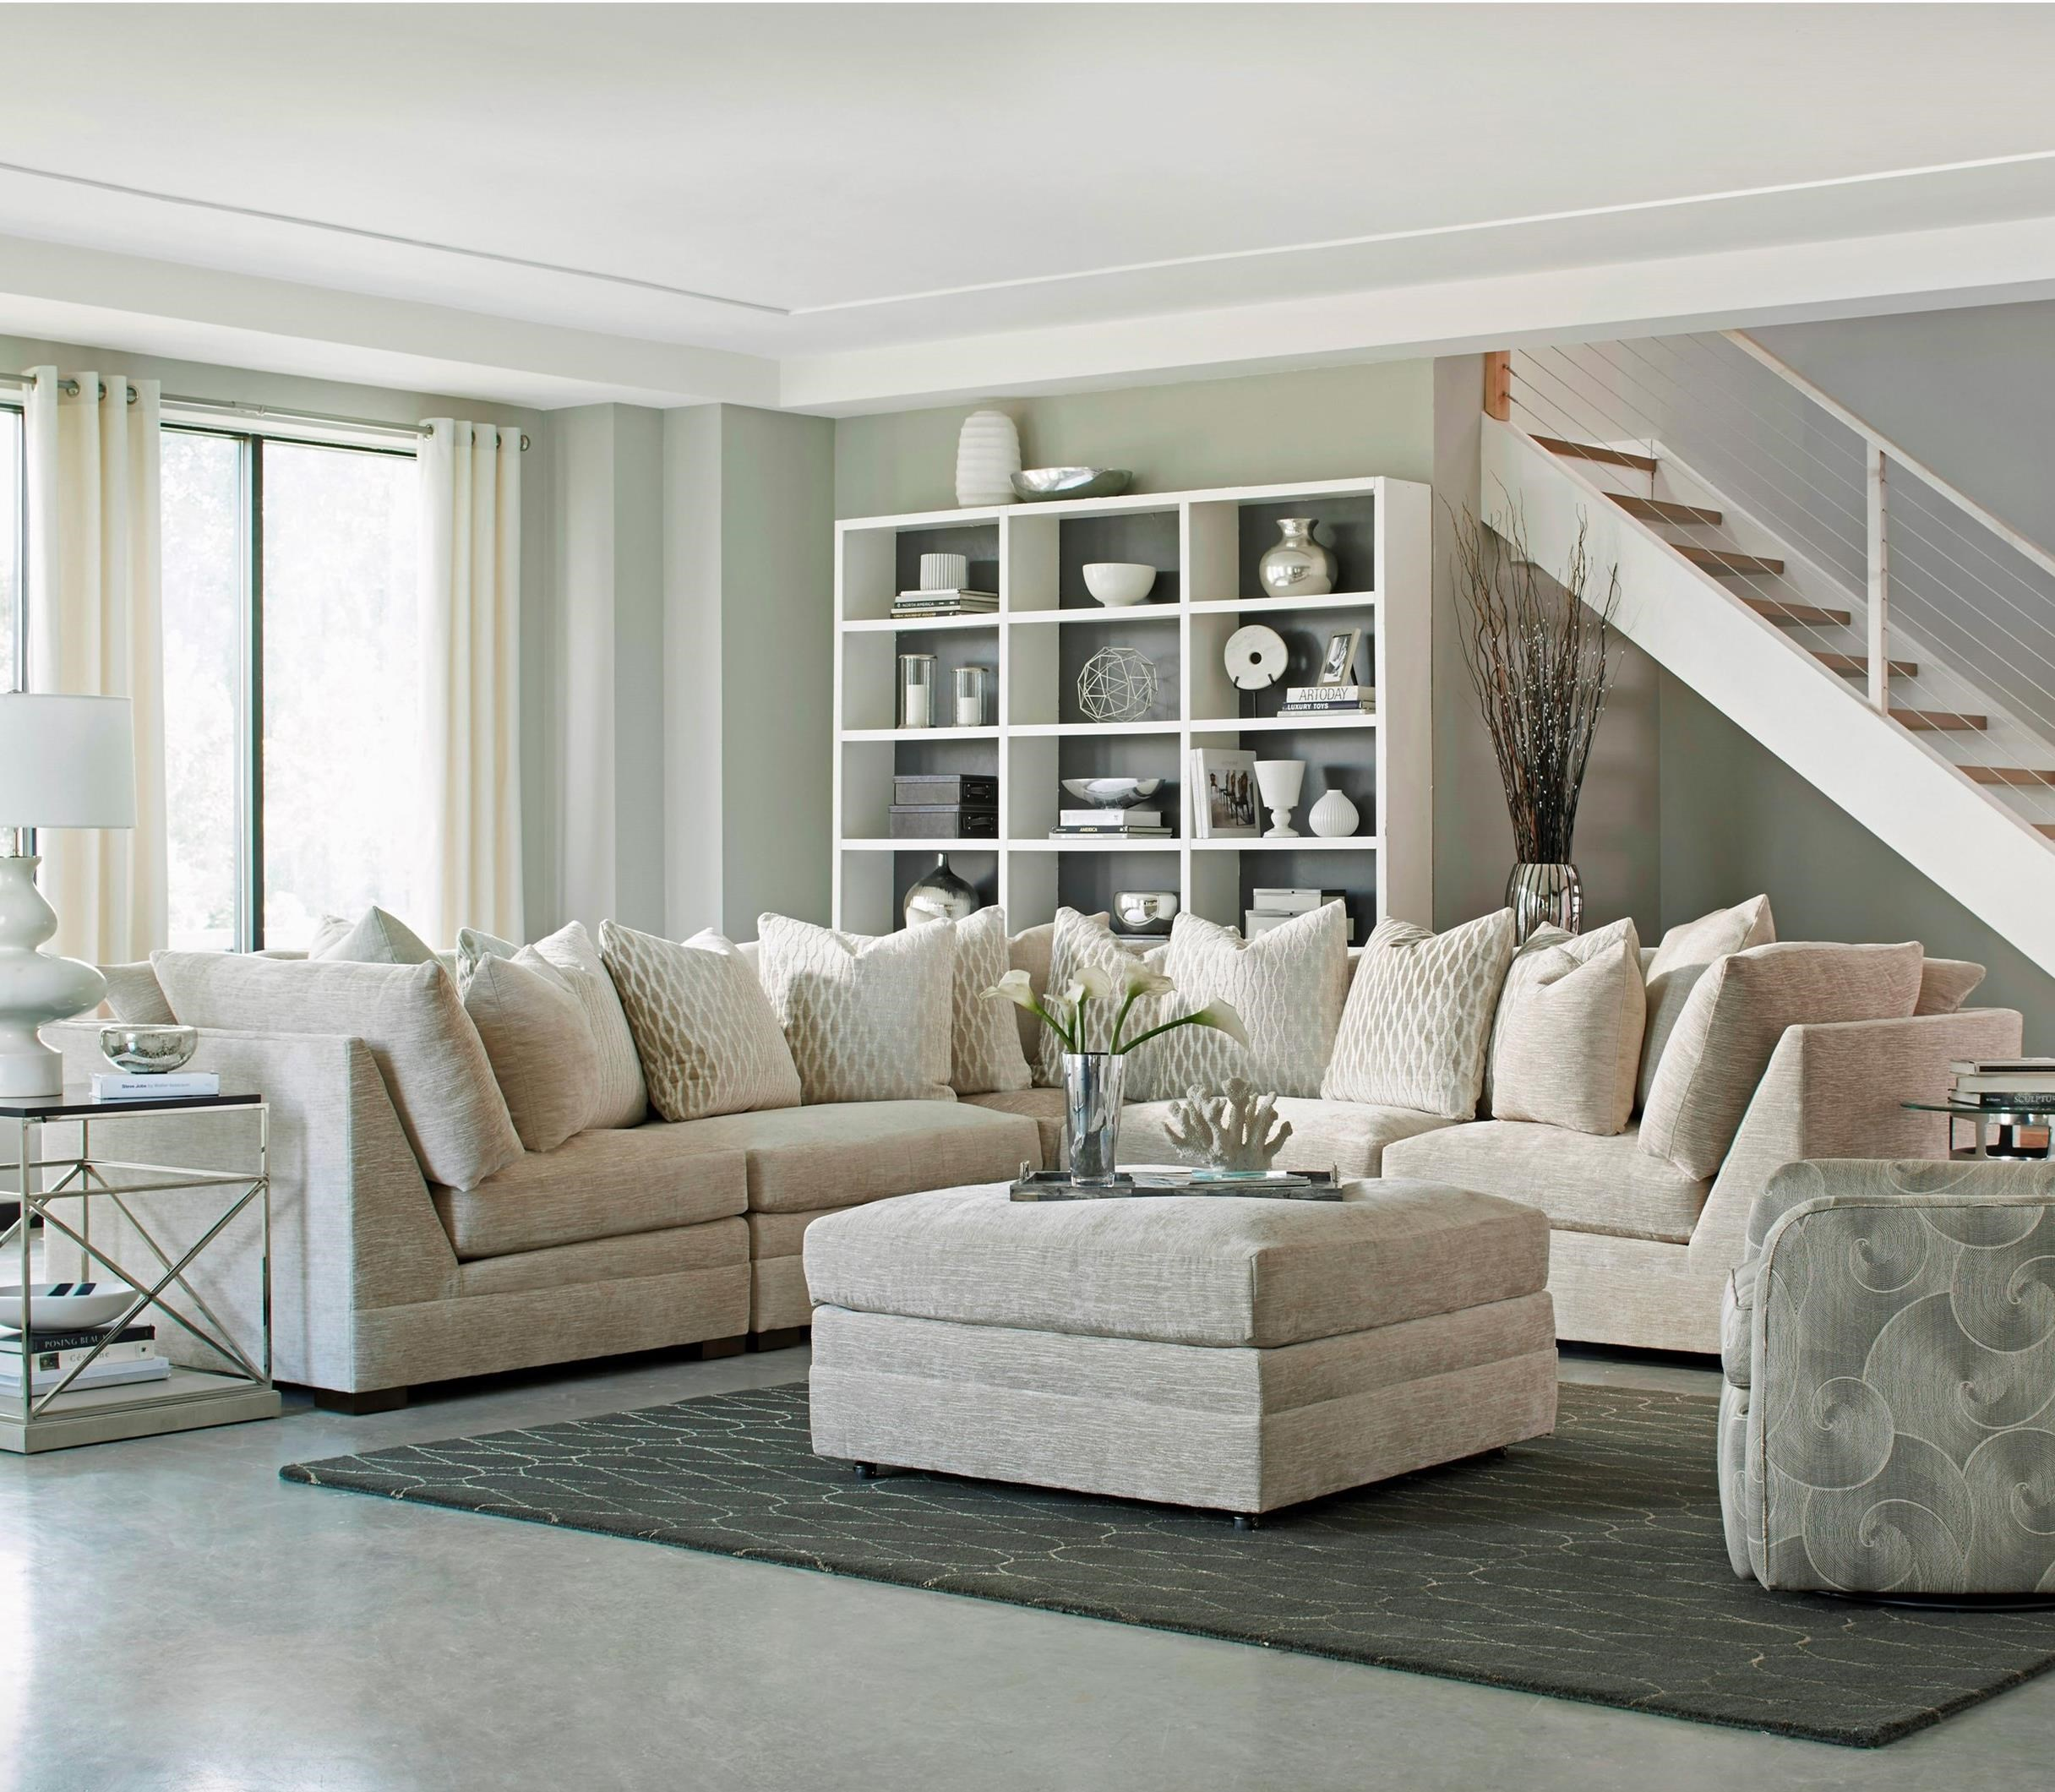 7100 5 Pc Sectional Sofa by Huntington House at Baer's Furniture